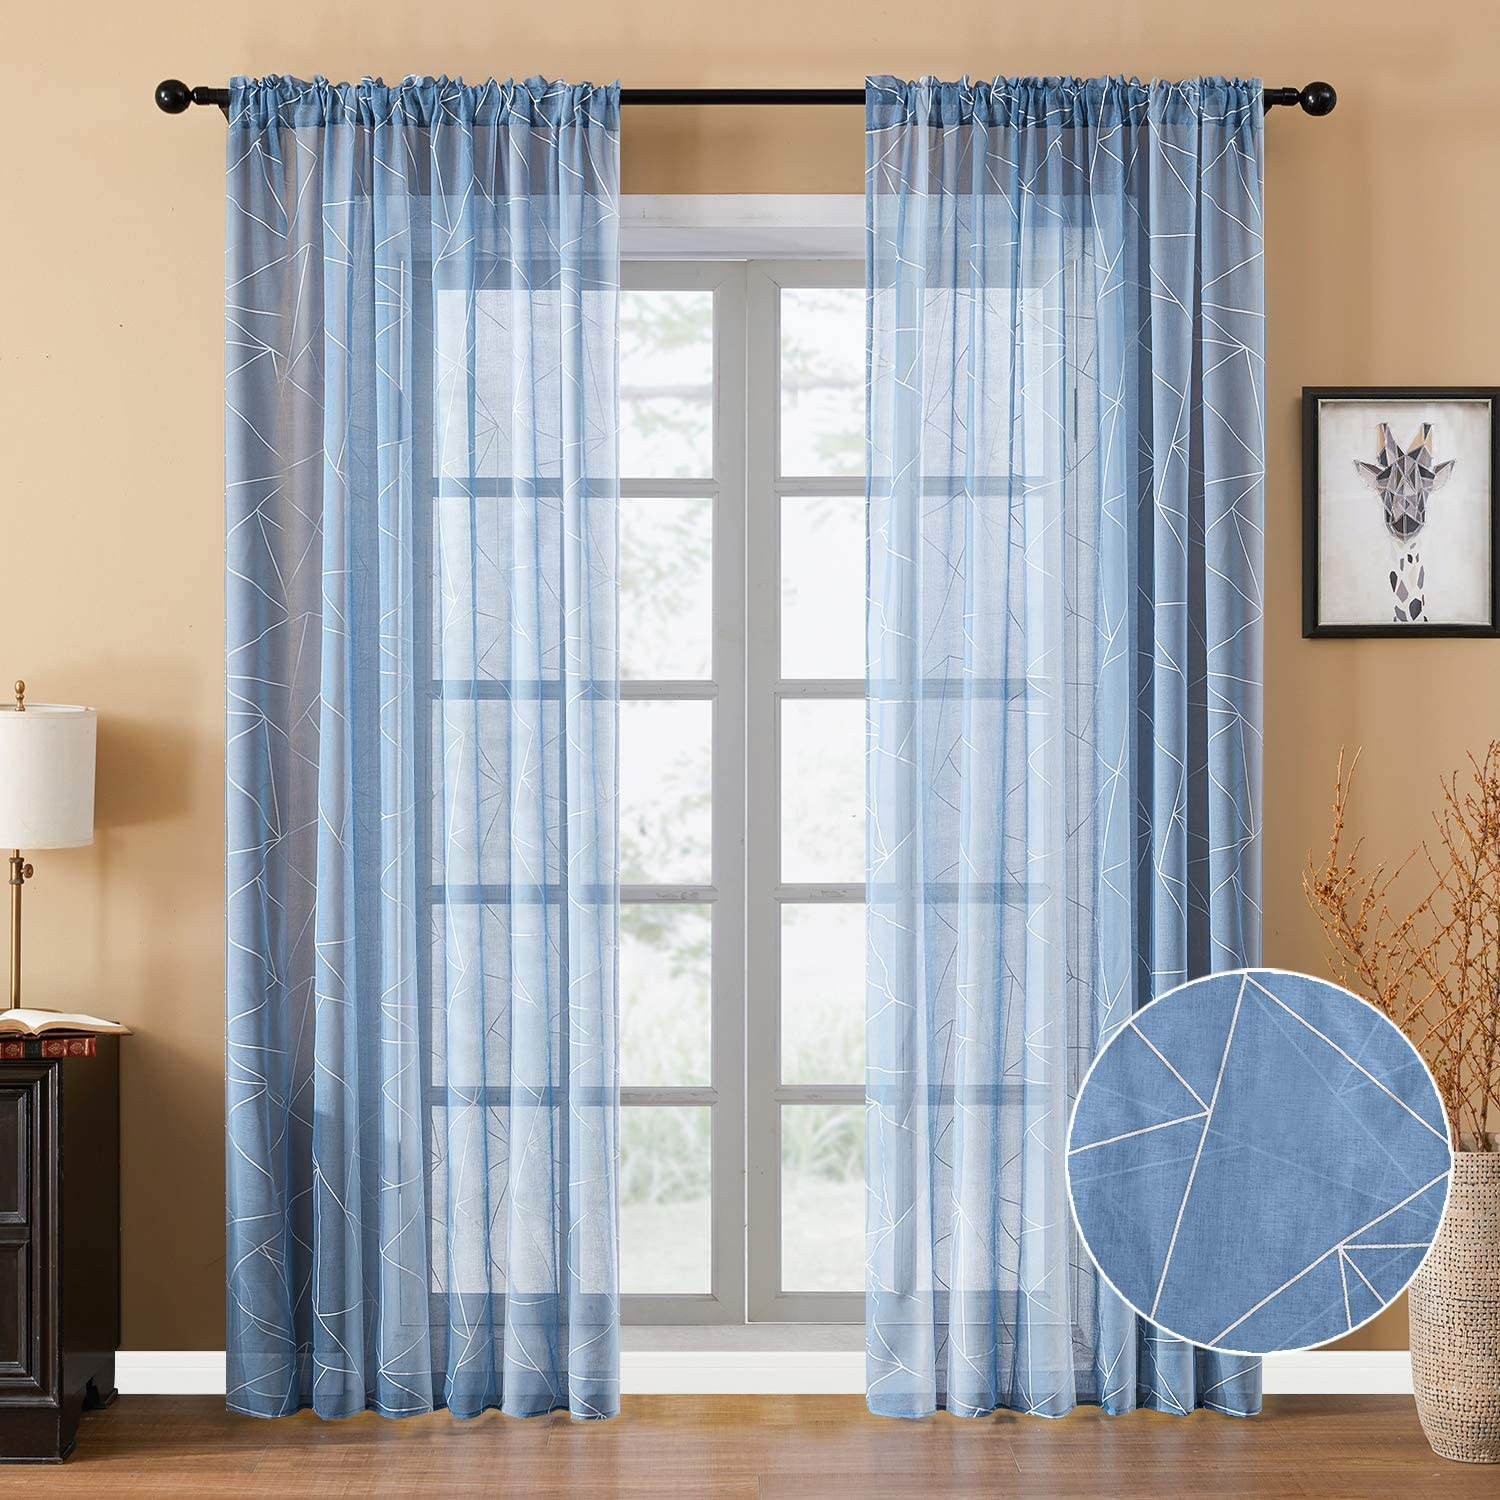 YOKISTG Faux Linen Sheer Curtains 96 Inches Long Rod Pocket Printed Geometry Window Curtains for Bedroom Living Room, Blue, 2 Panels